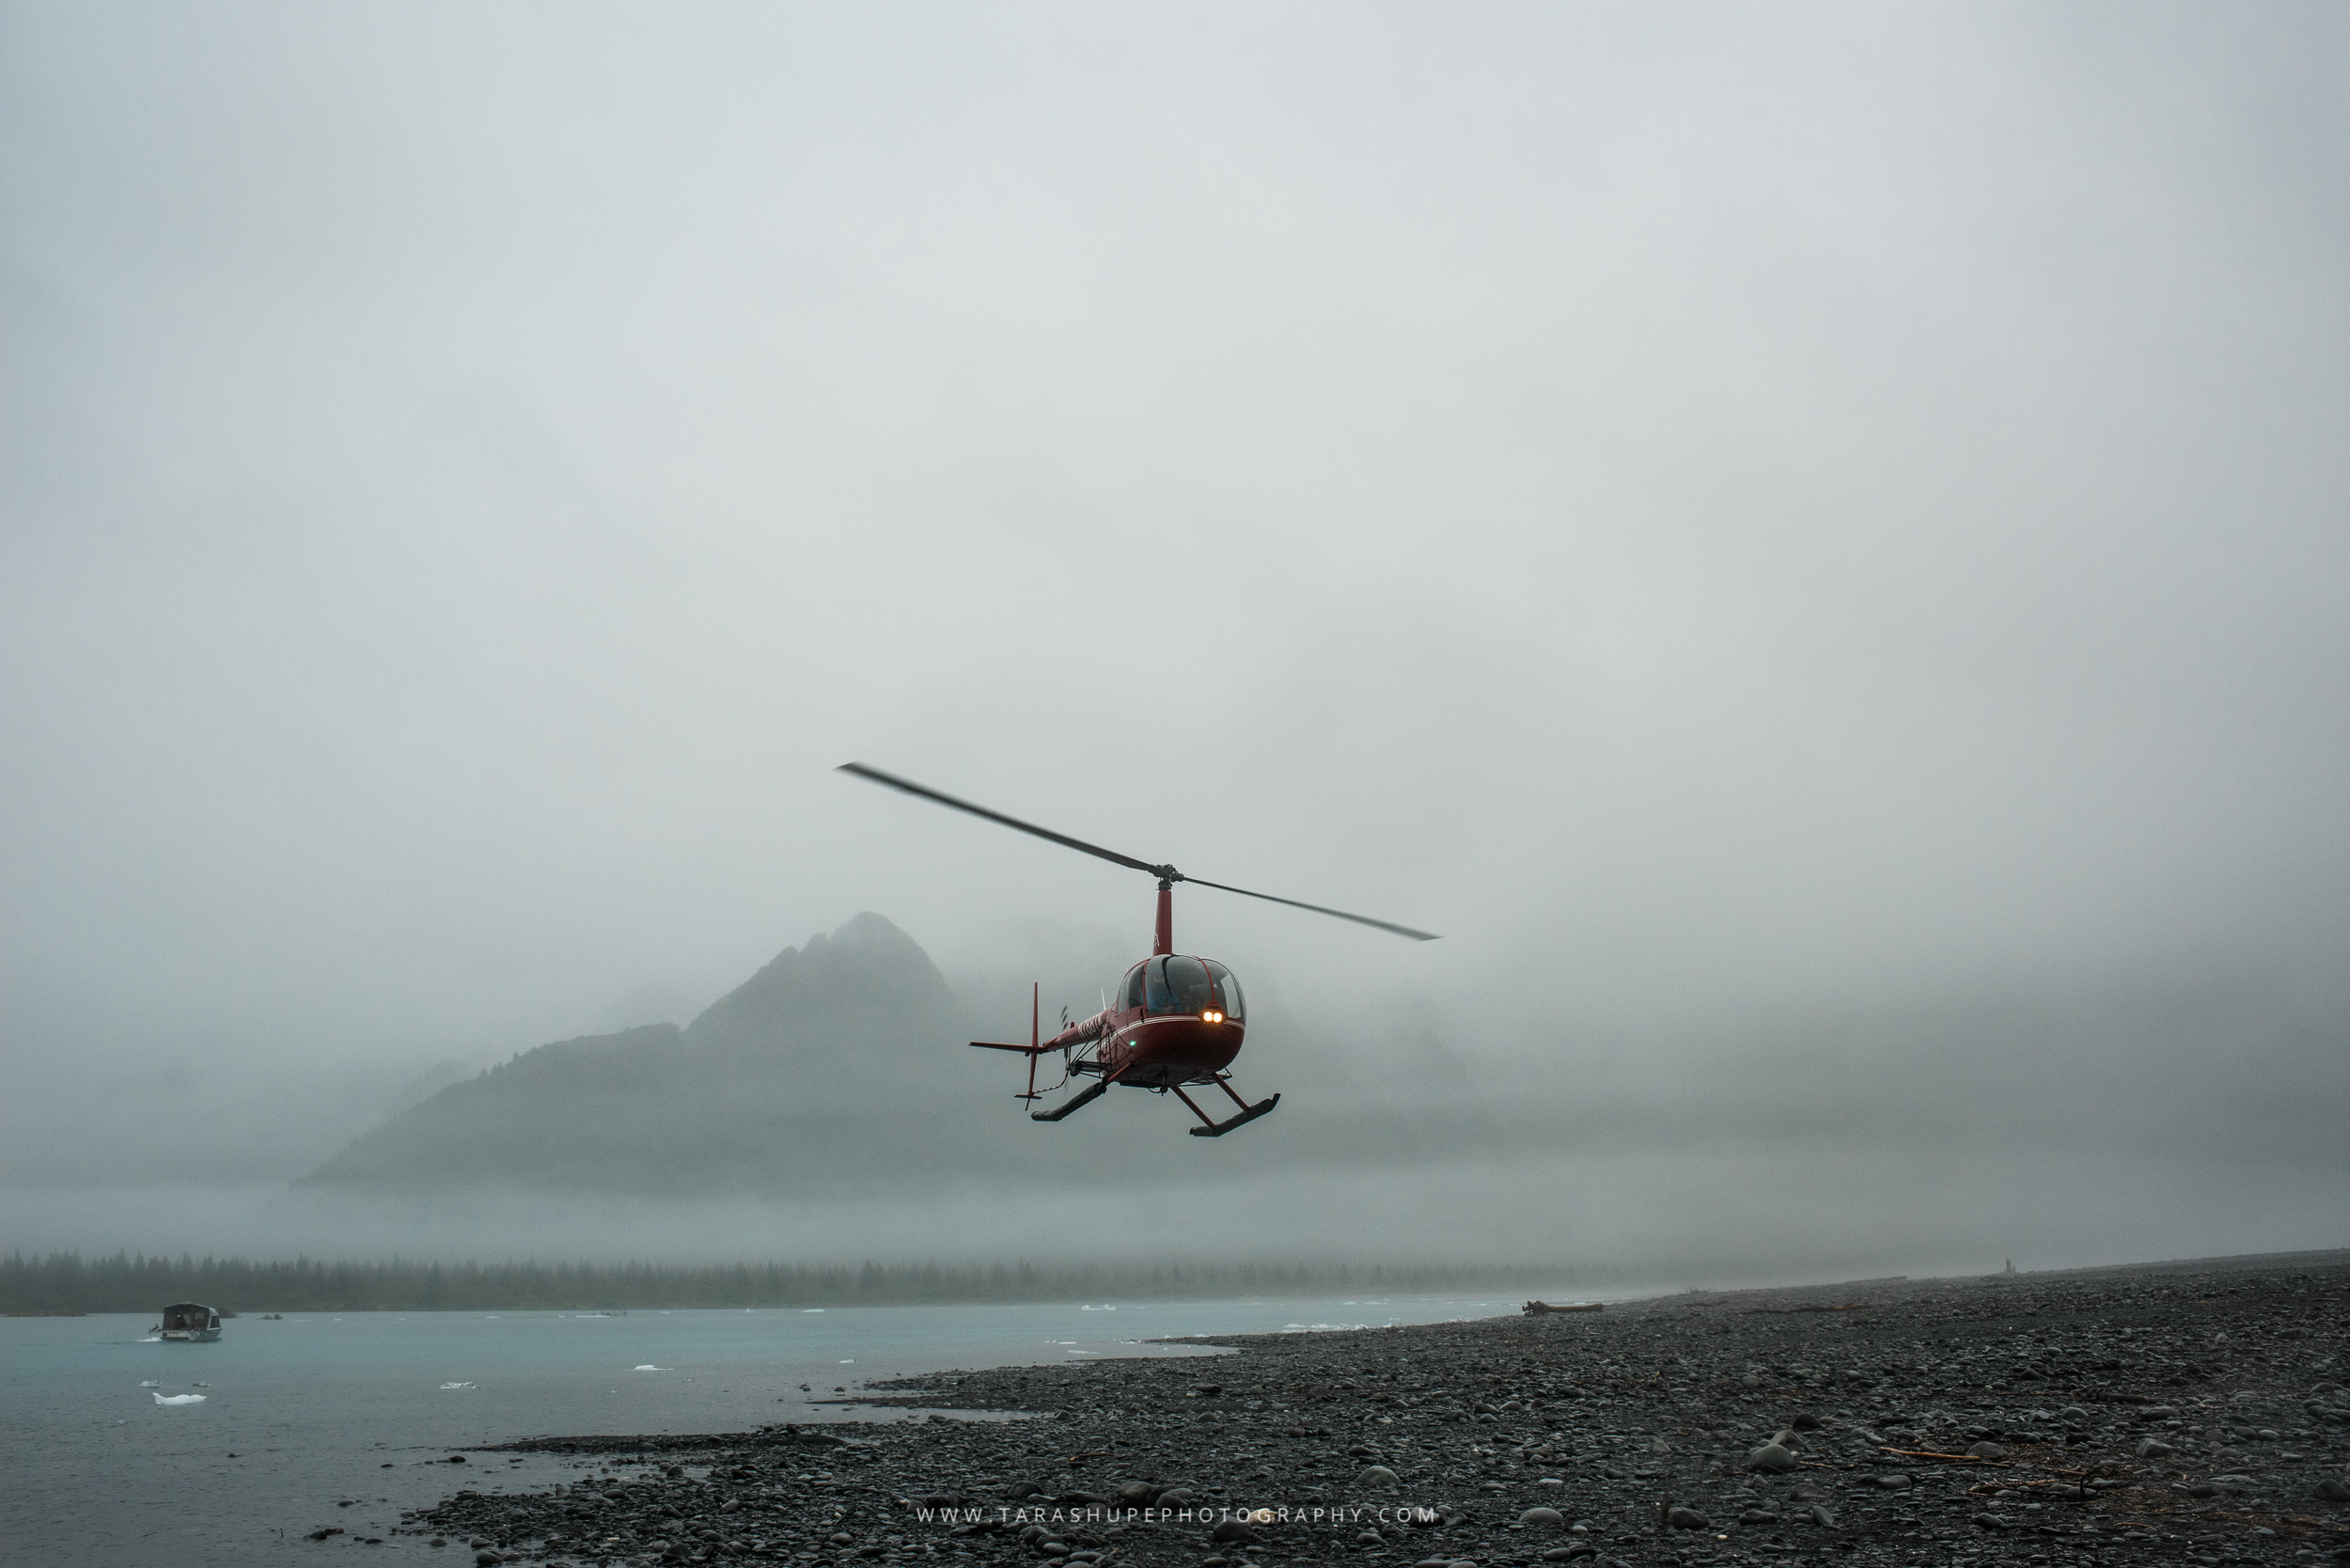 ALASKA_TaraShupe_Outdoor_Adventure_DSC_4719.jpg